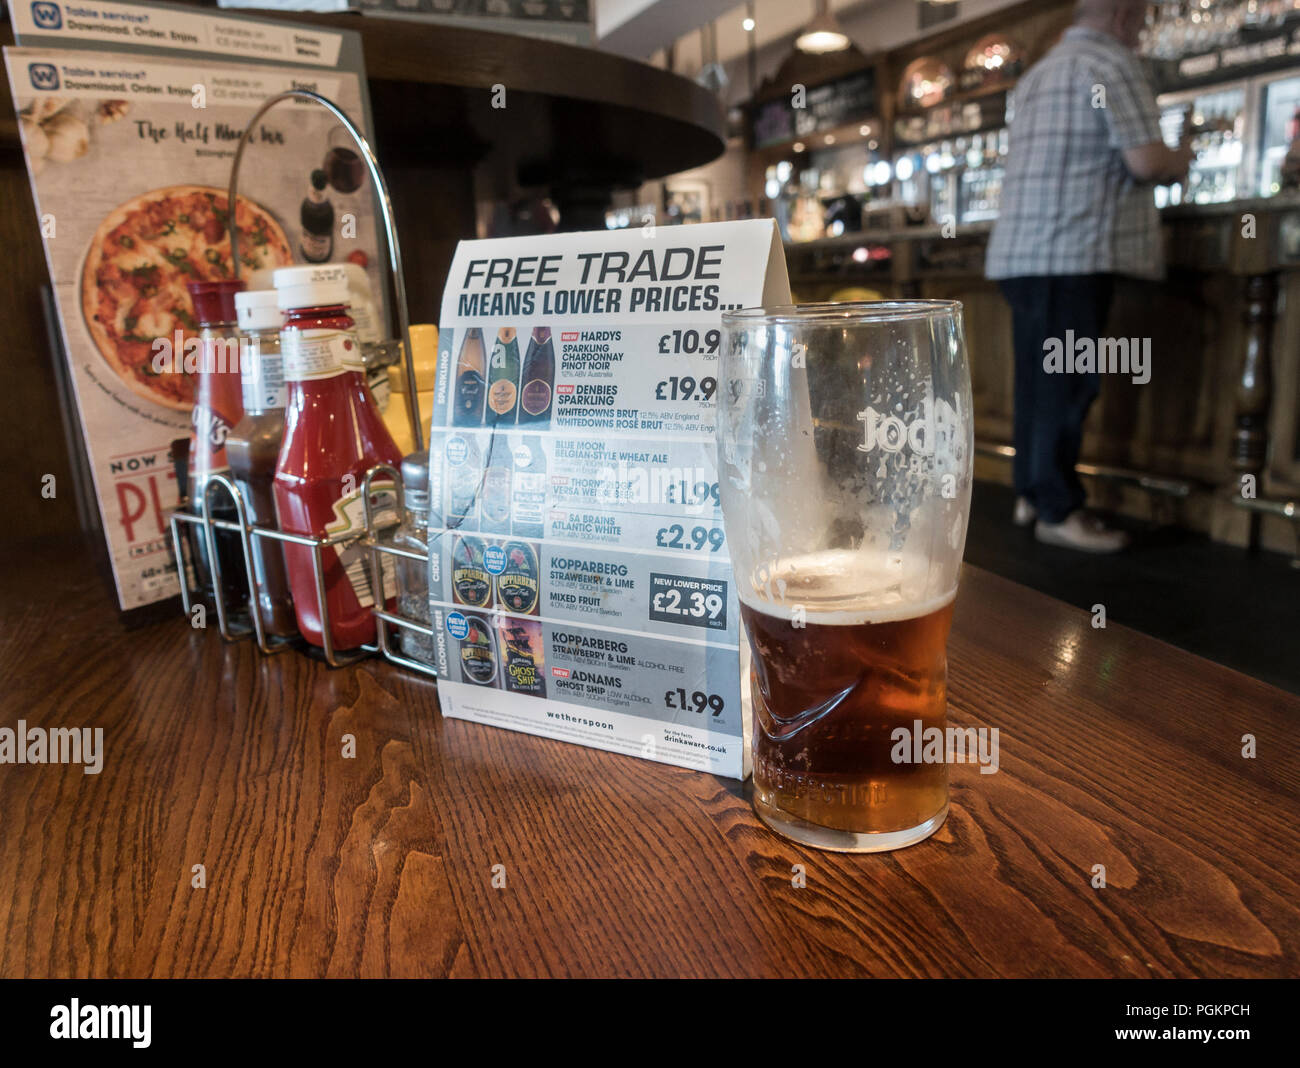 'Free trade (post Brexit) means lower prices' info in JD Wetherspoons pub in England. UK - Stock Image